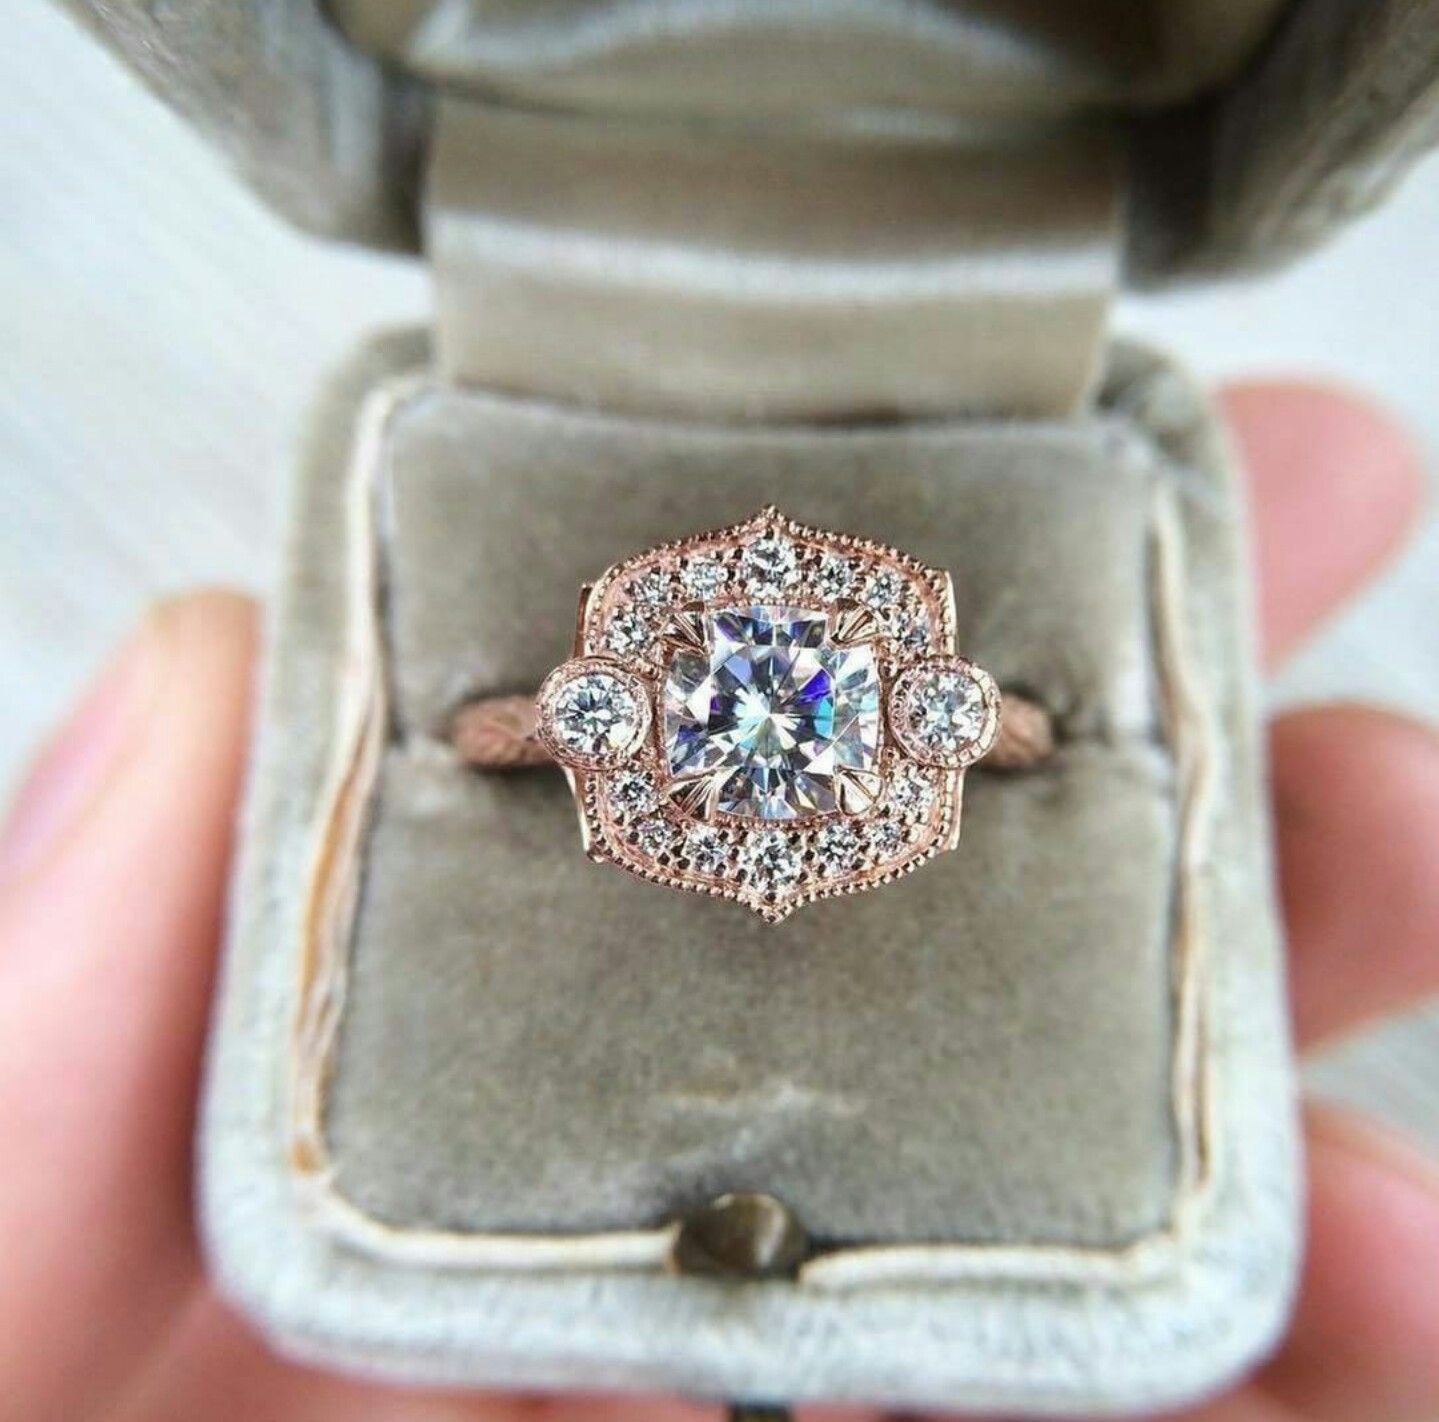 Pin by rachel kane on sparkle pinterest ring wedding and bling